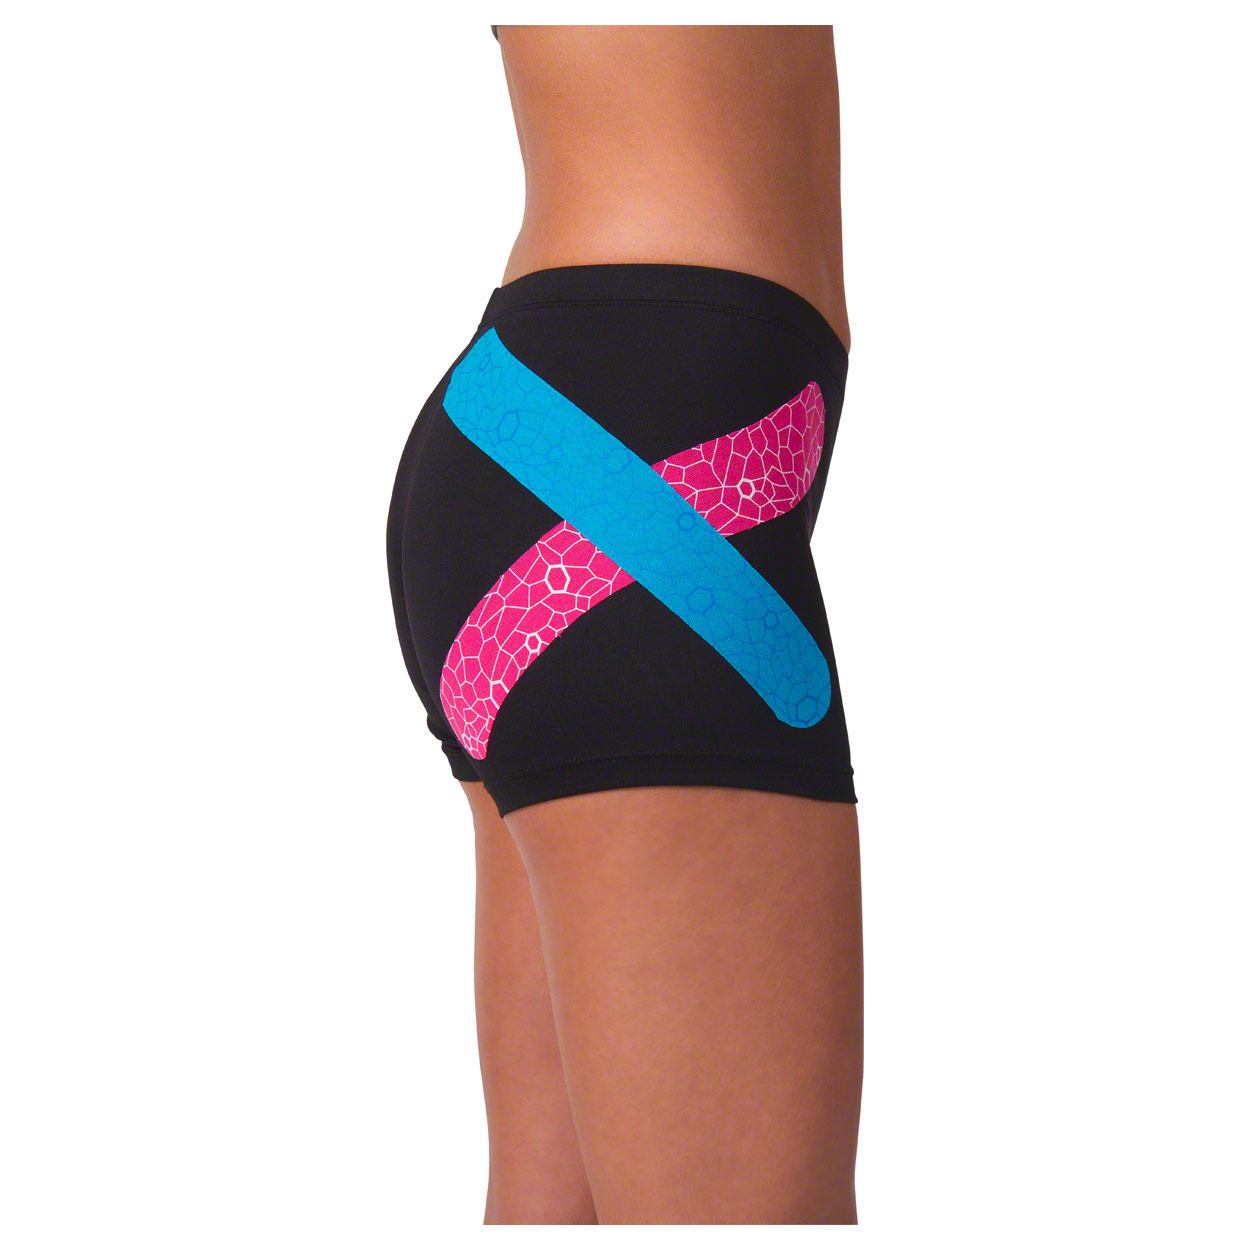 Kunden PH 2016: Thera-Band Kinesiology Tape XactStretch, 5 m x 5 cm, beige/beige